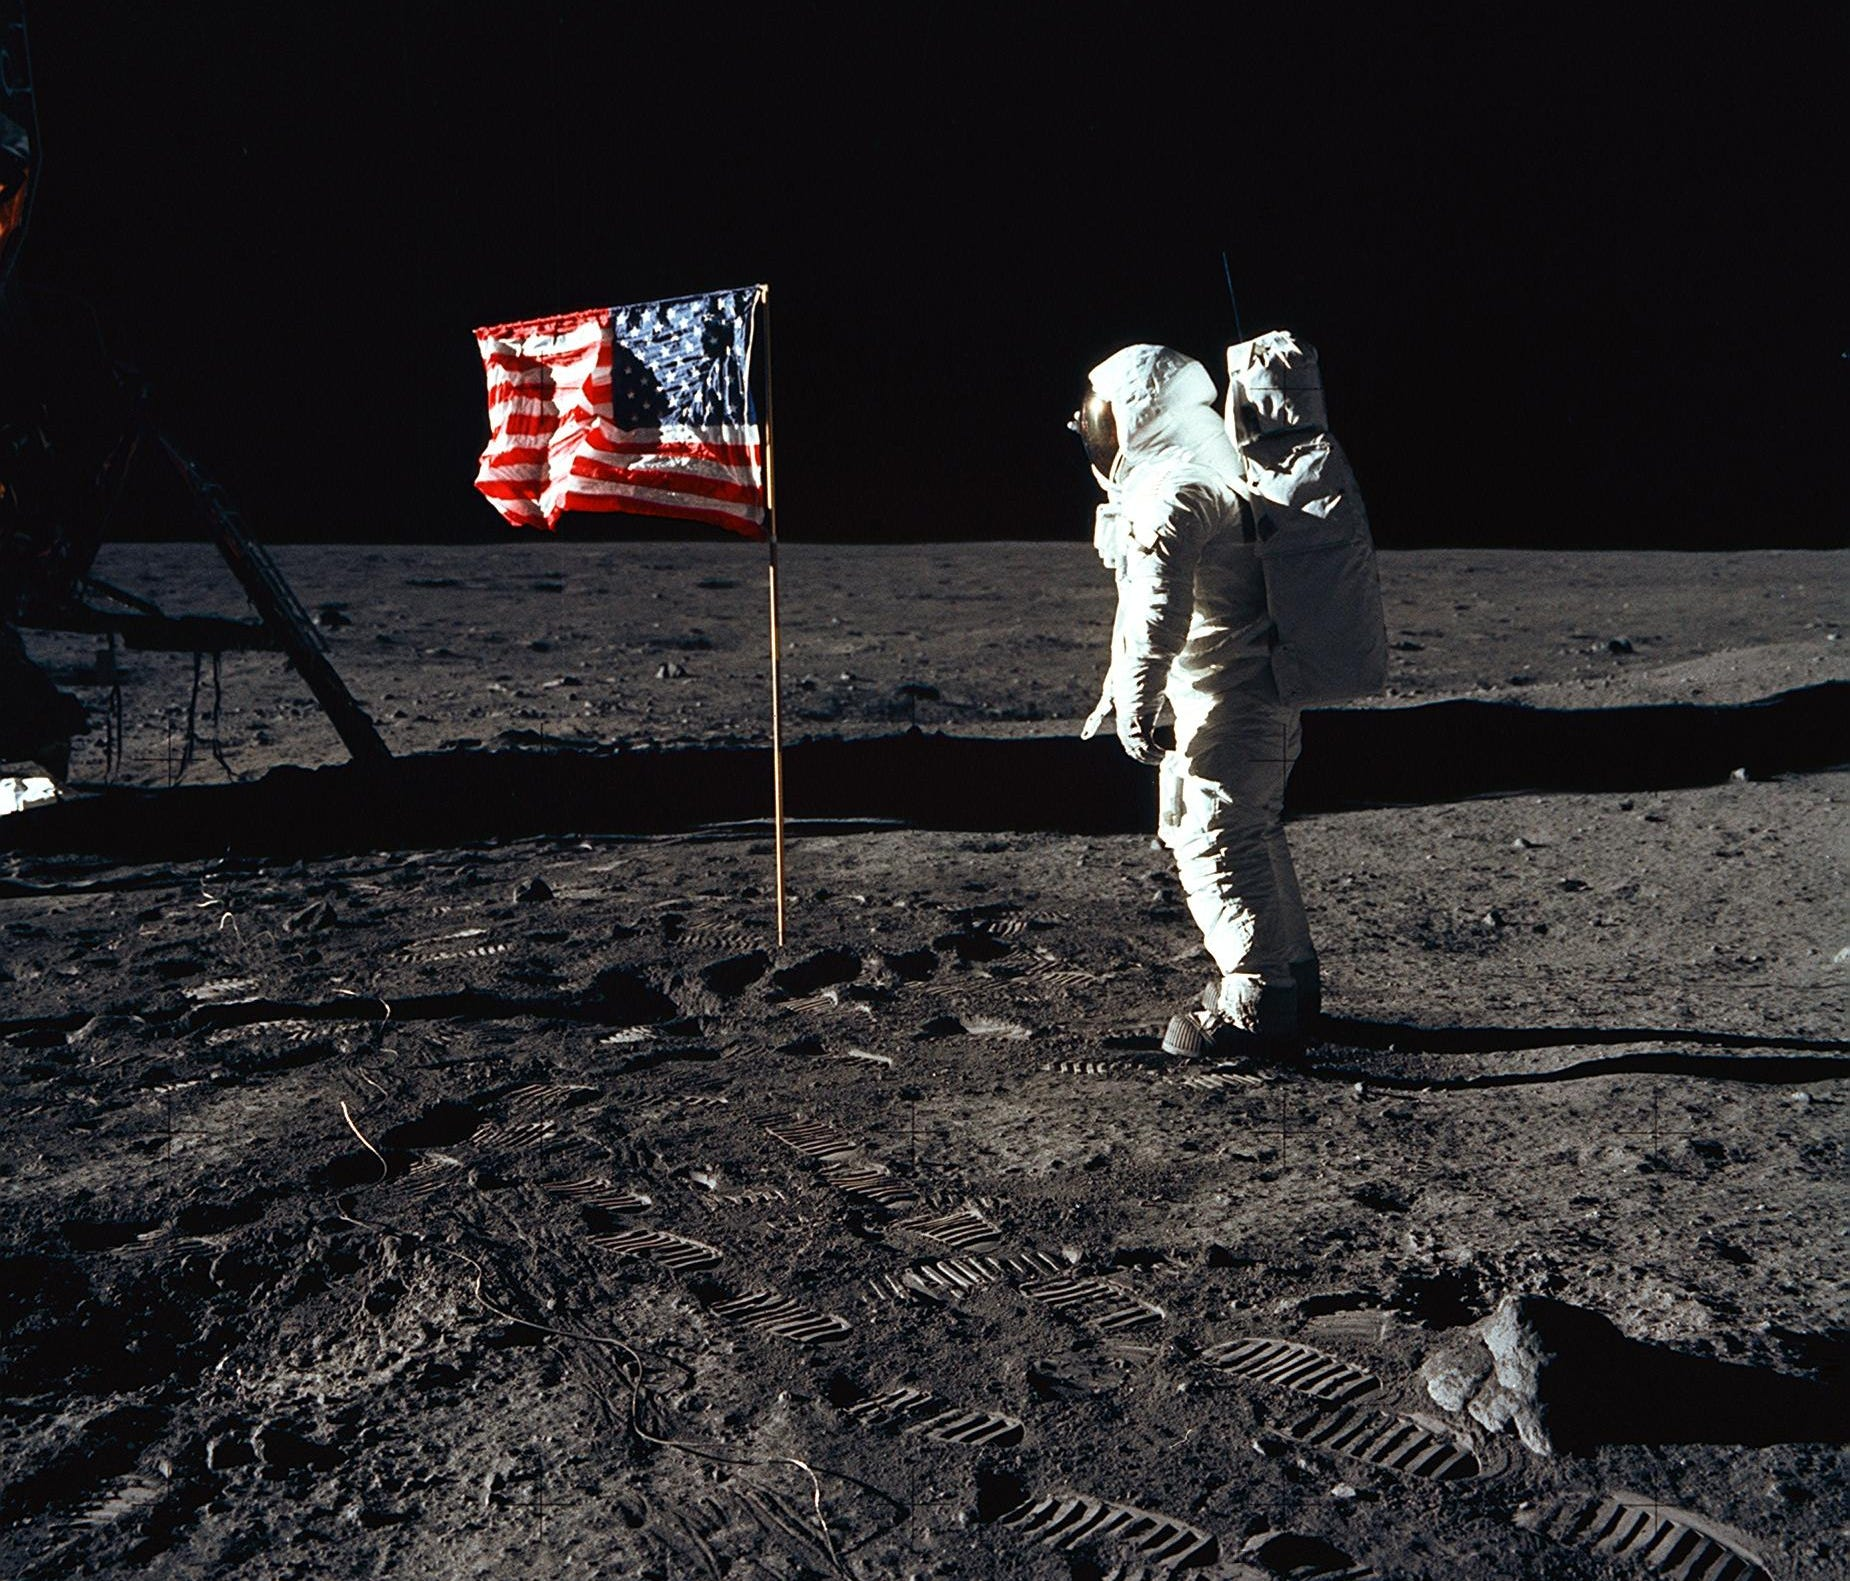 On July 20, 1969, astronaut Buzz Aldrin, lunar module pilot of the first lunar landing mission, posed for a photograph beside the deployed United States flag during an Apollo 11 moonwalk. The Lunar Module is on the left, and the footprints of the ast